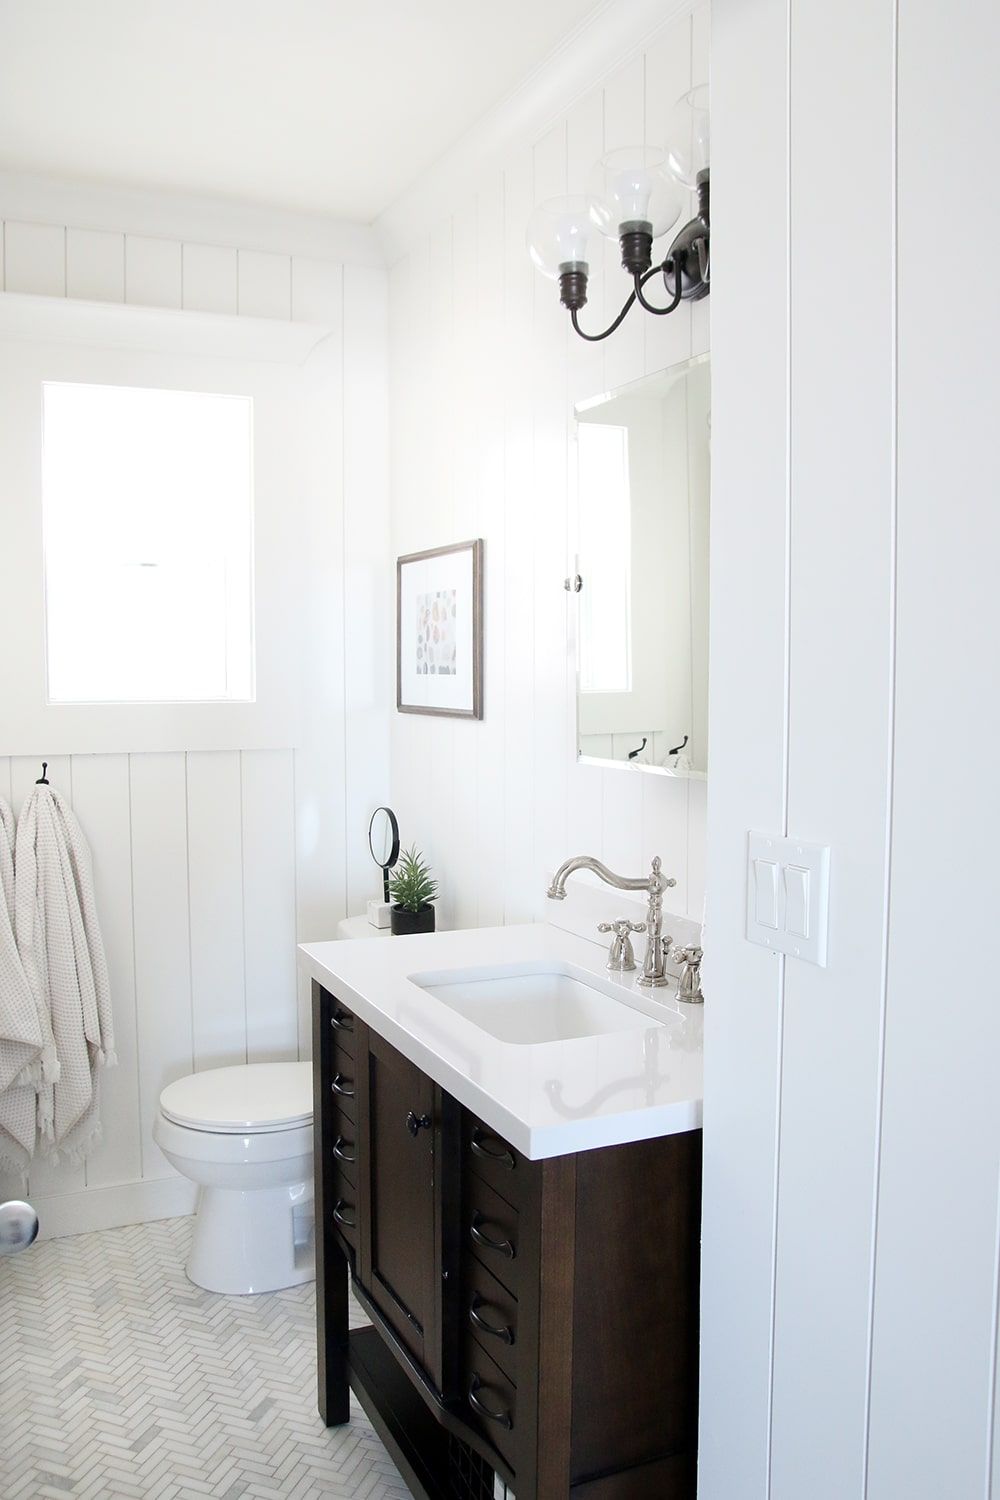 The Most DIY Friendly Bathroom Renovation We\'ve Ever Done! - Chris ...